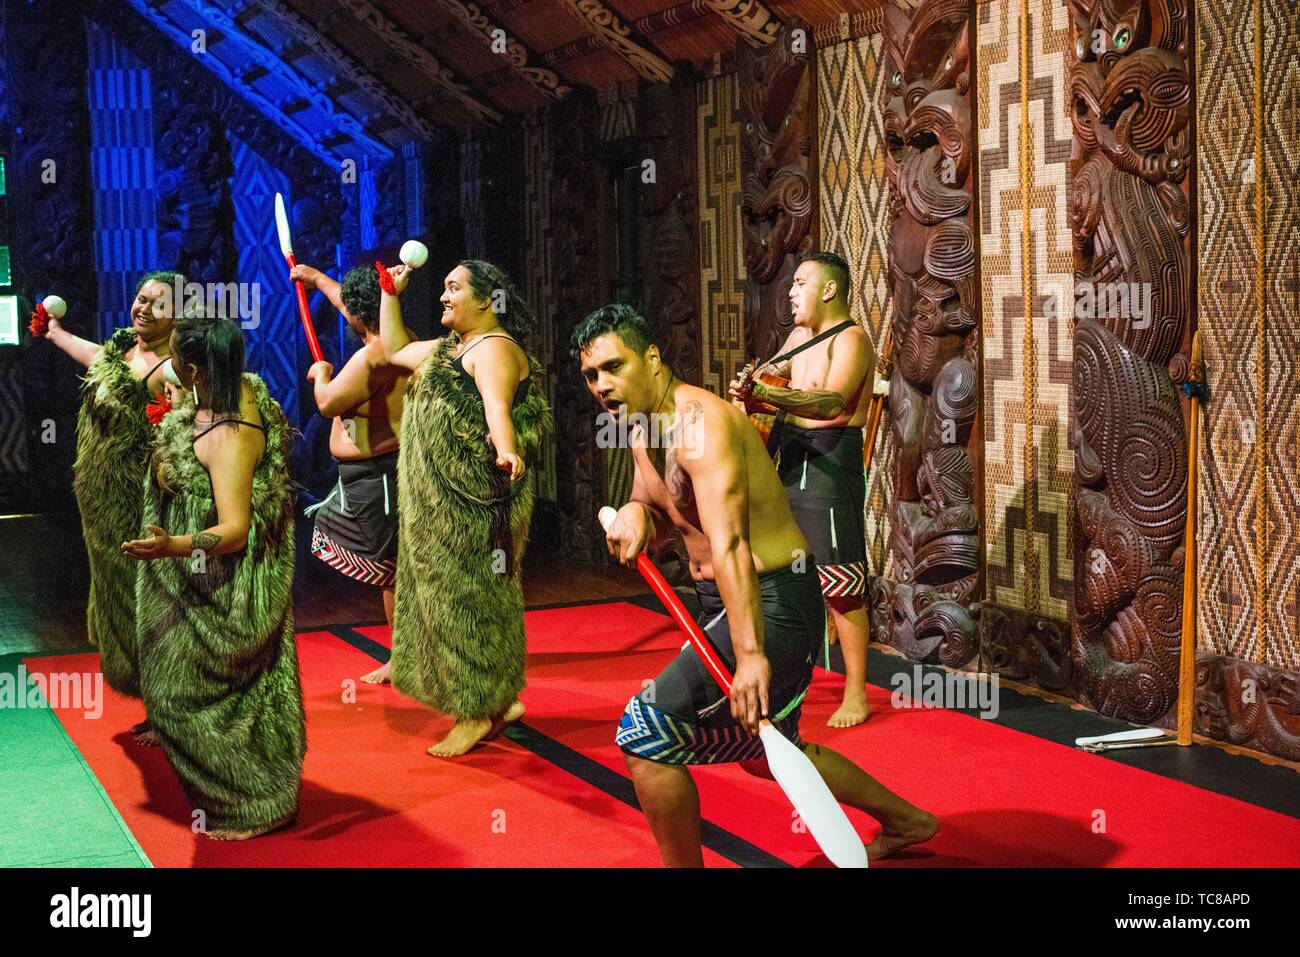 Maori cultural performance at the Meeting House, Waitangi Treaty Grounds, New Zealand. Stock Photo